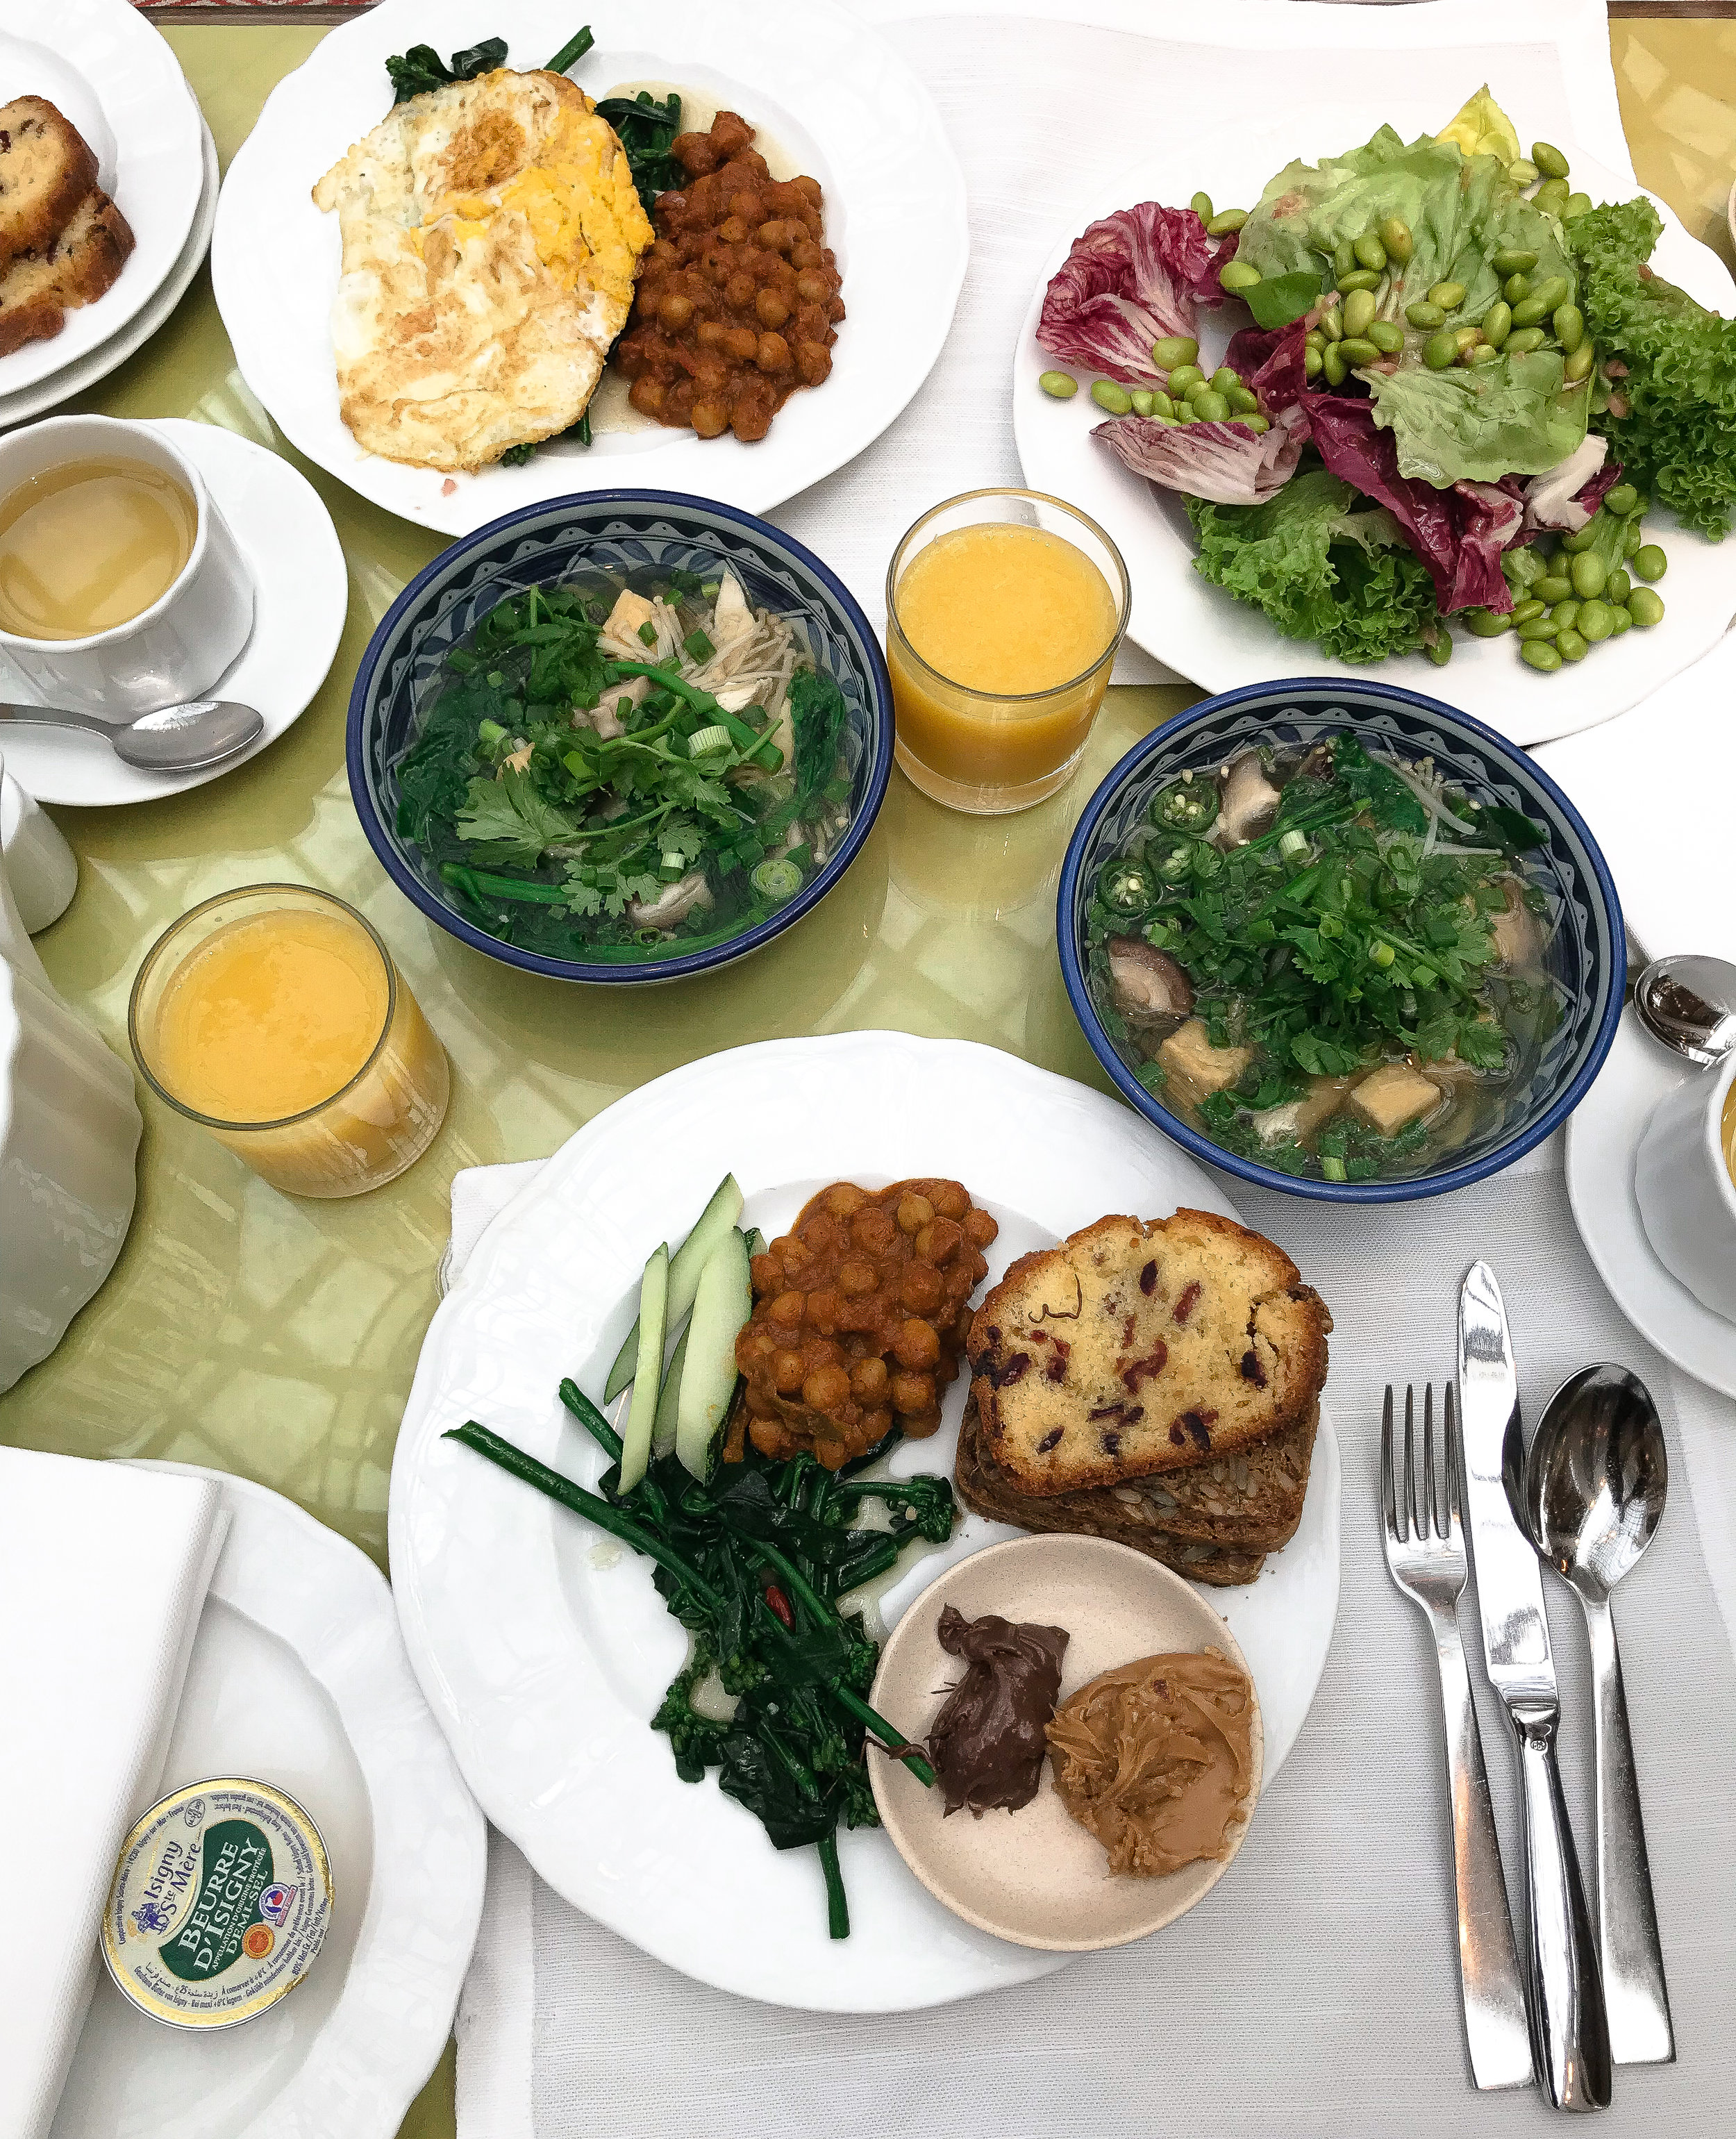 Breakfast mornings at The Ritz Carlton Millenia Singapore